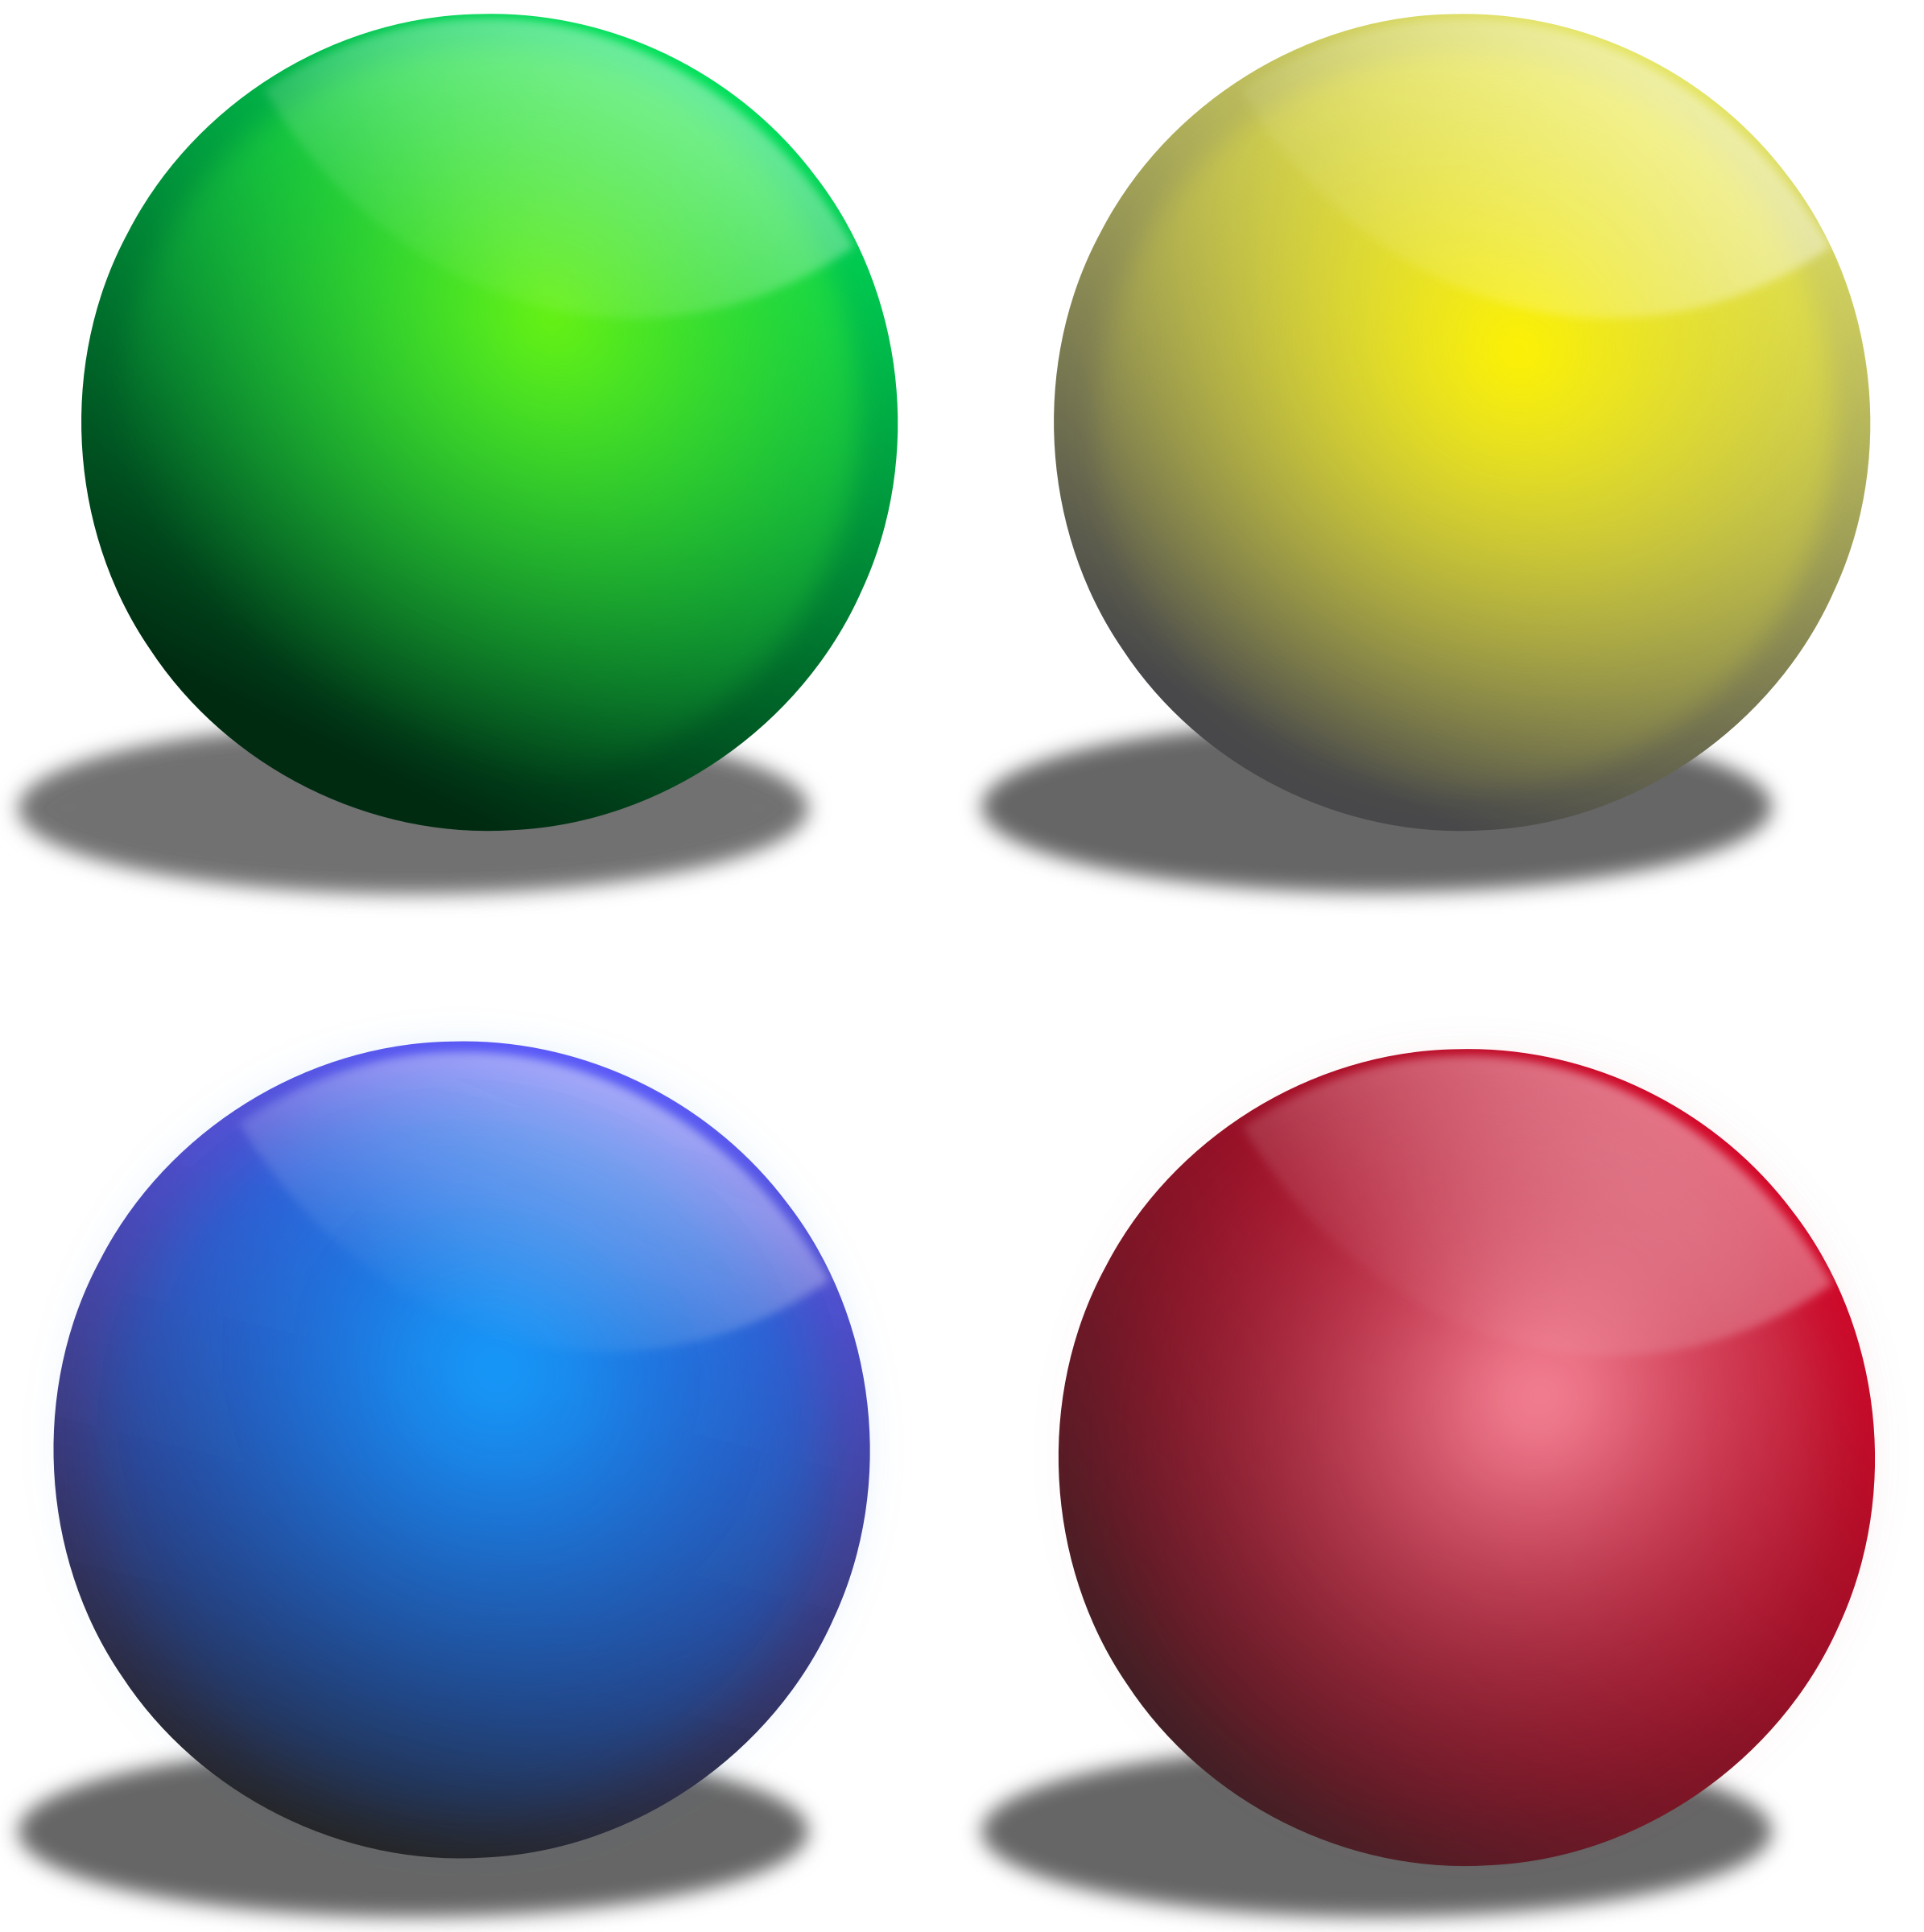 Color spheres, Esferas de colores by Ehecatl1138